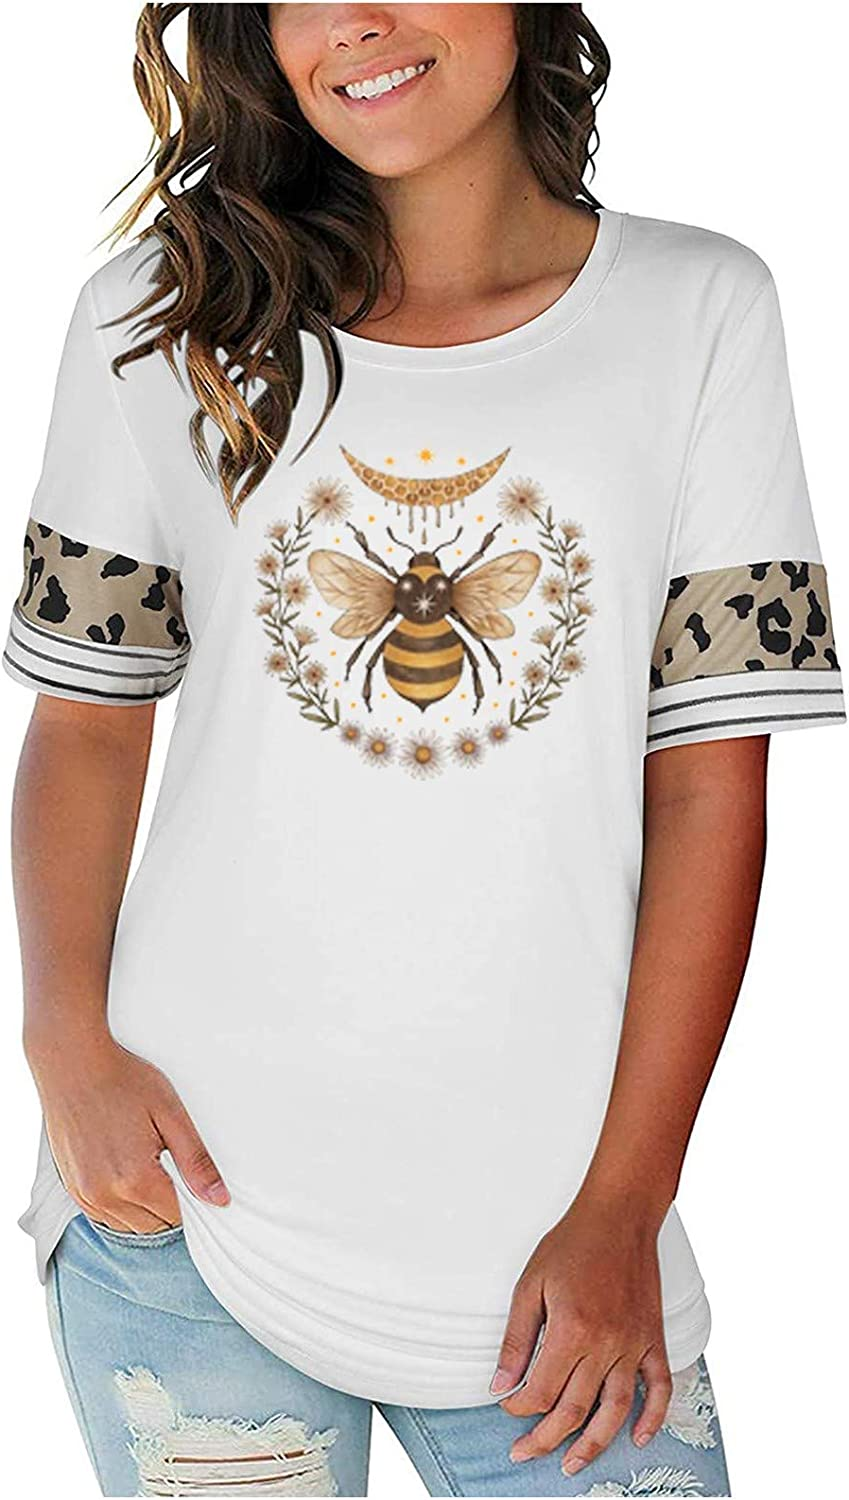 free shipping Womens Gorgeous Print T Shirts Graphic Casual Short Loose Crewneck Sleeve